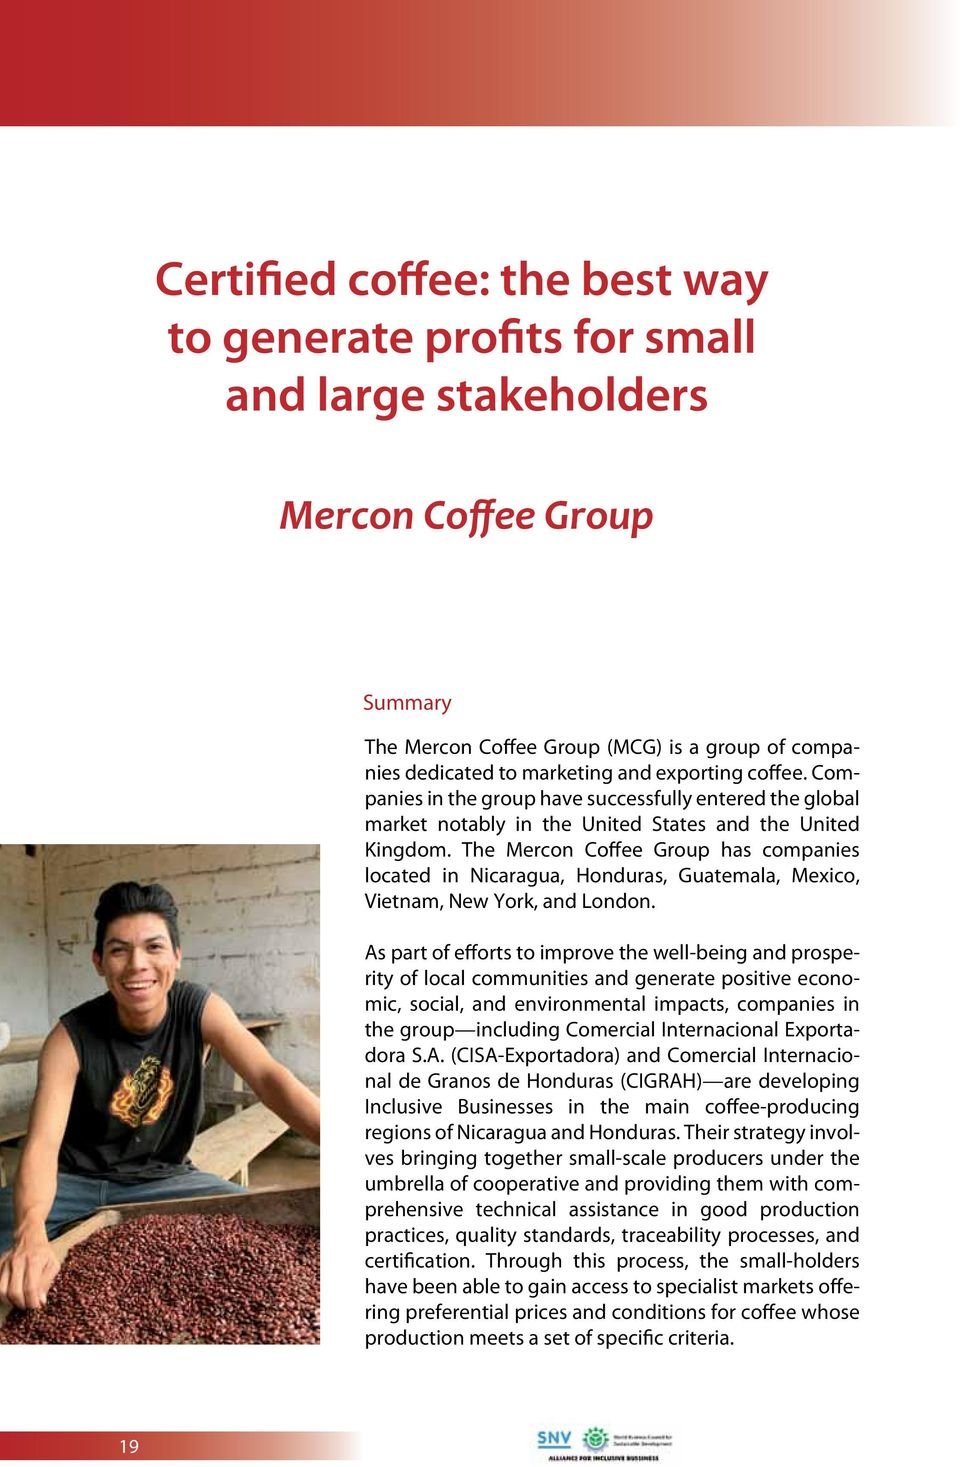 The Mercon Coffee Group has companies located in Nicaragua, Honduras, Guatemala, Mexico, Vietnam, New York, and London.